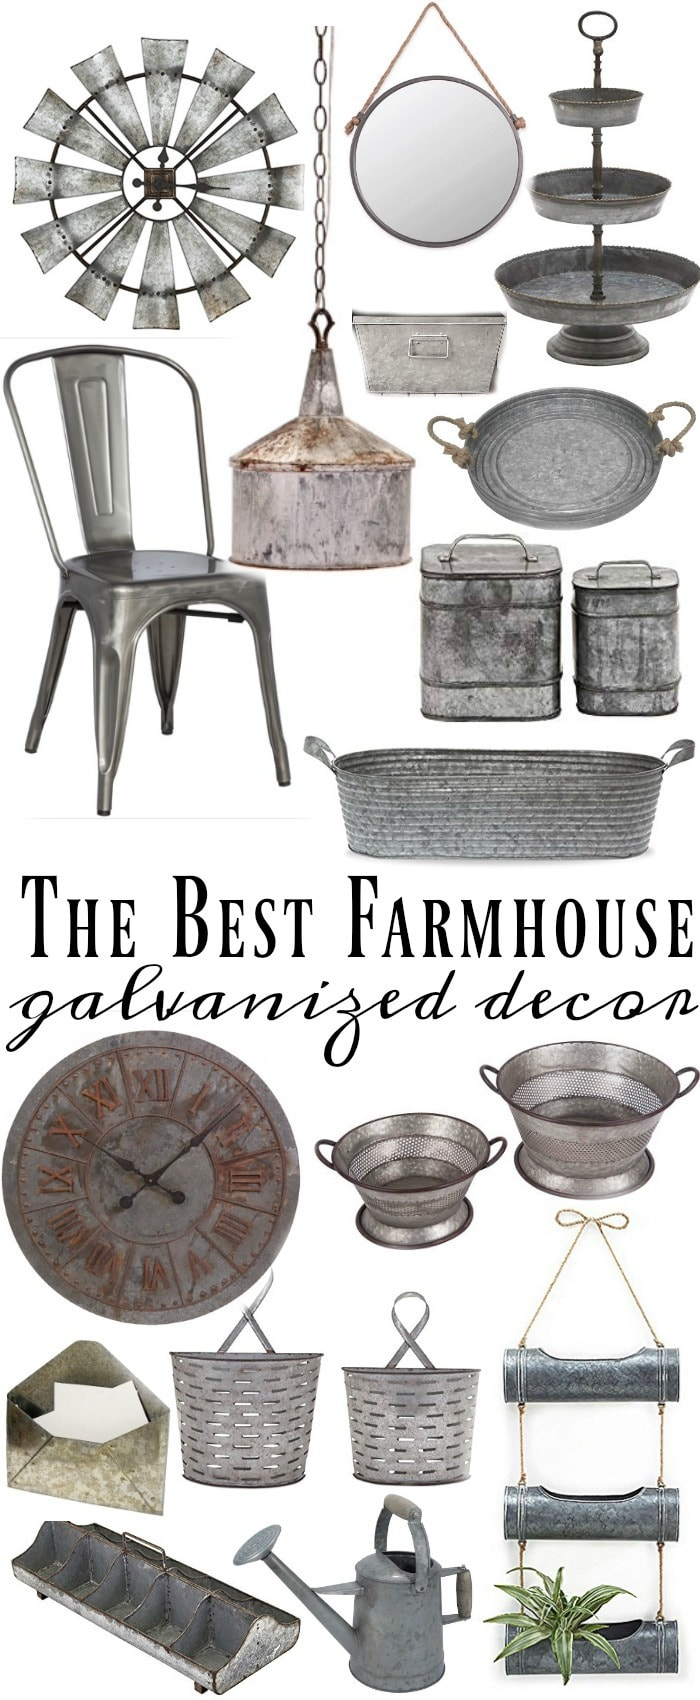 Where to find the best galvanized home decor liz marie blog for Find home decor